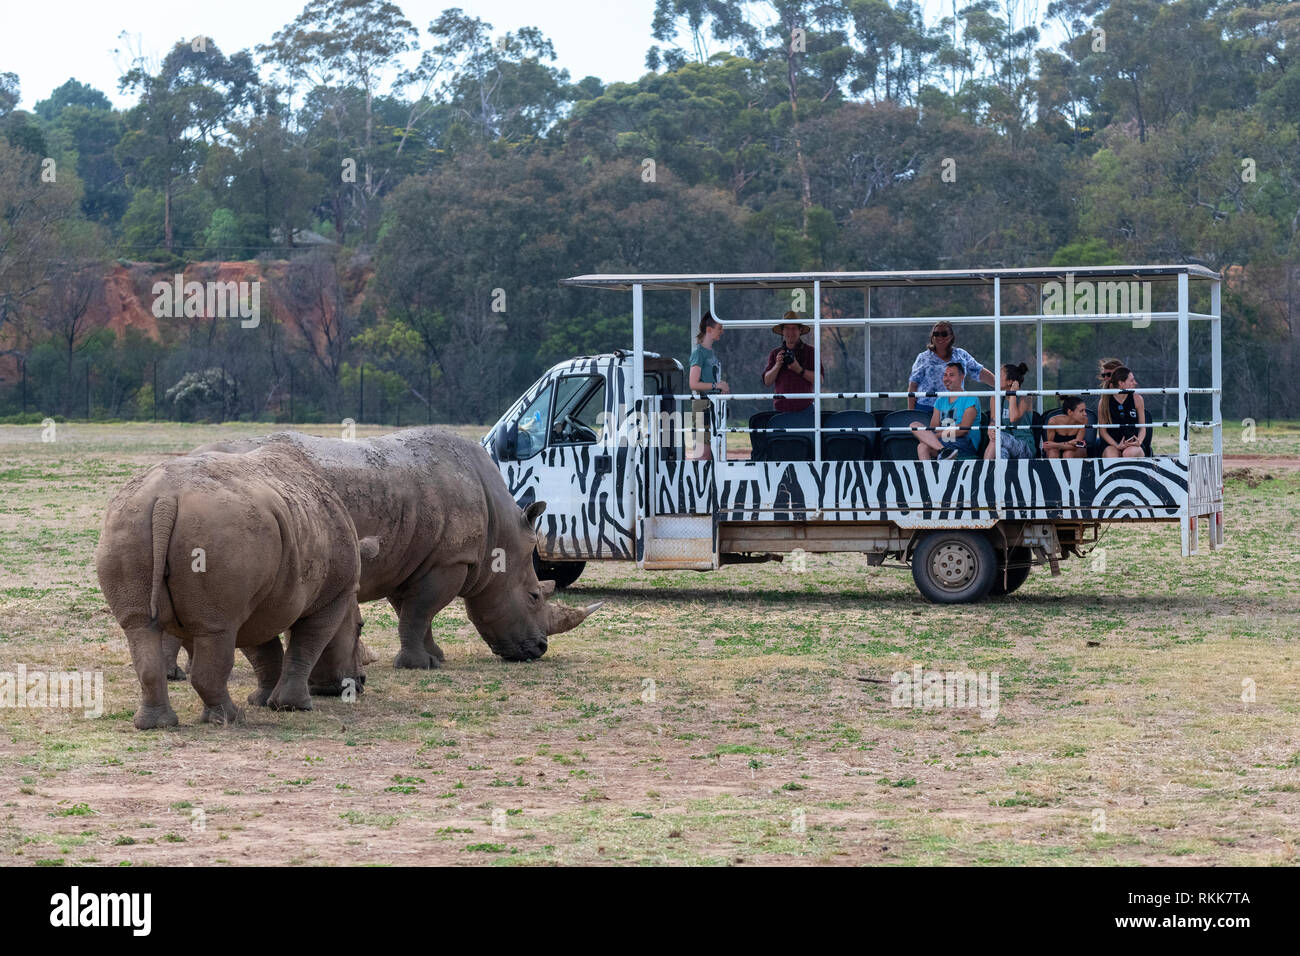 White rhinos and tourist vehicle at the Werribee Open Range Zoo.  The species is considered near threatened. - Stock Image